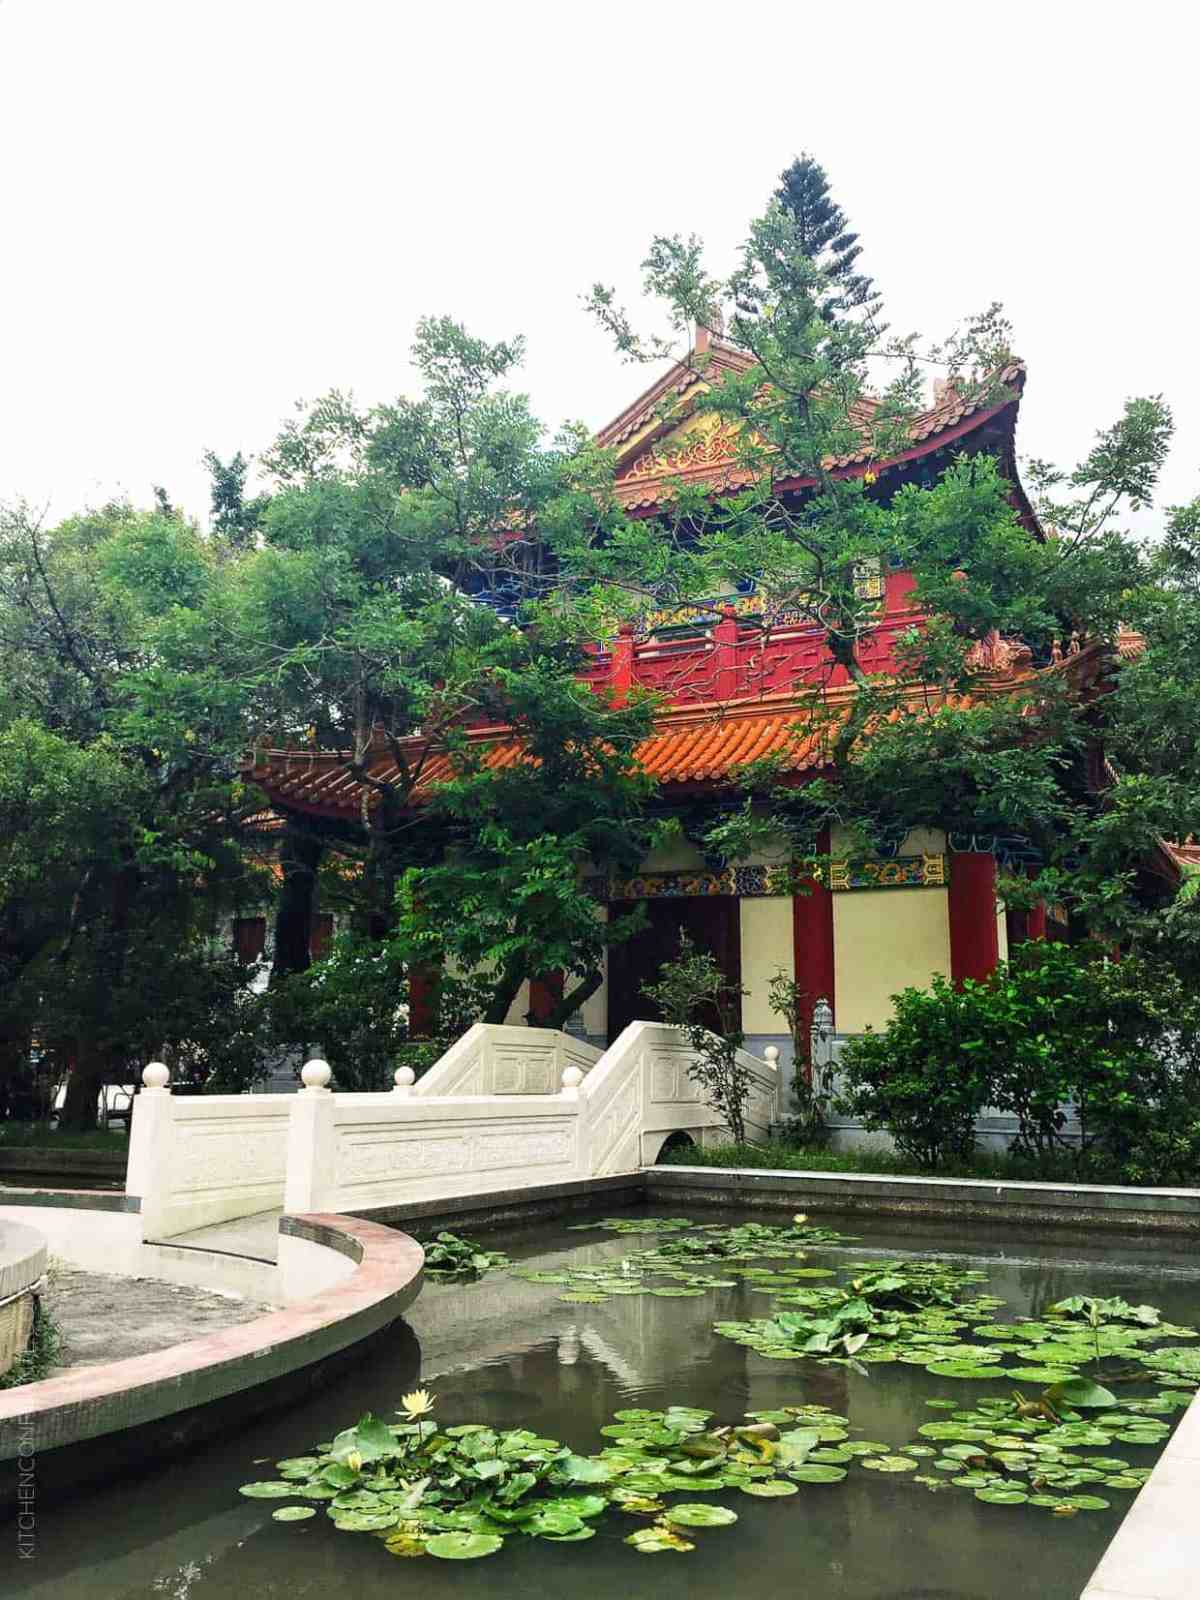 A Taste of Hong Kong: A Family Travel Guide // Planning a trip to Hong Kong? Come join me for our family's pick on places to savor, stay and play in Asia's World City!